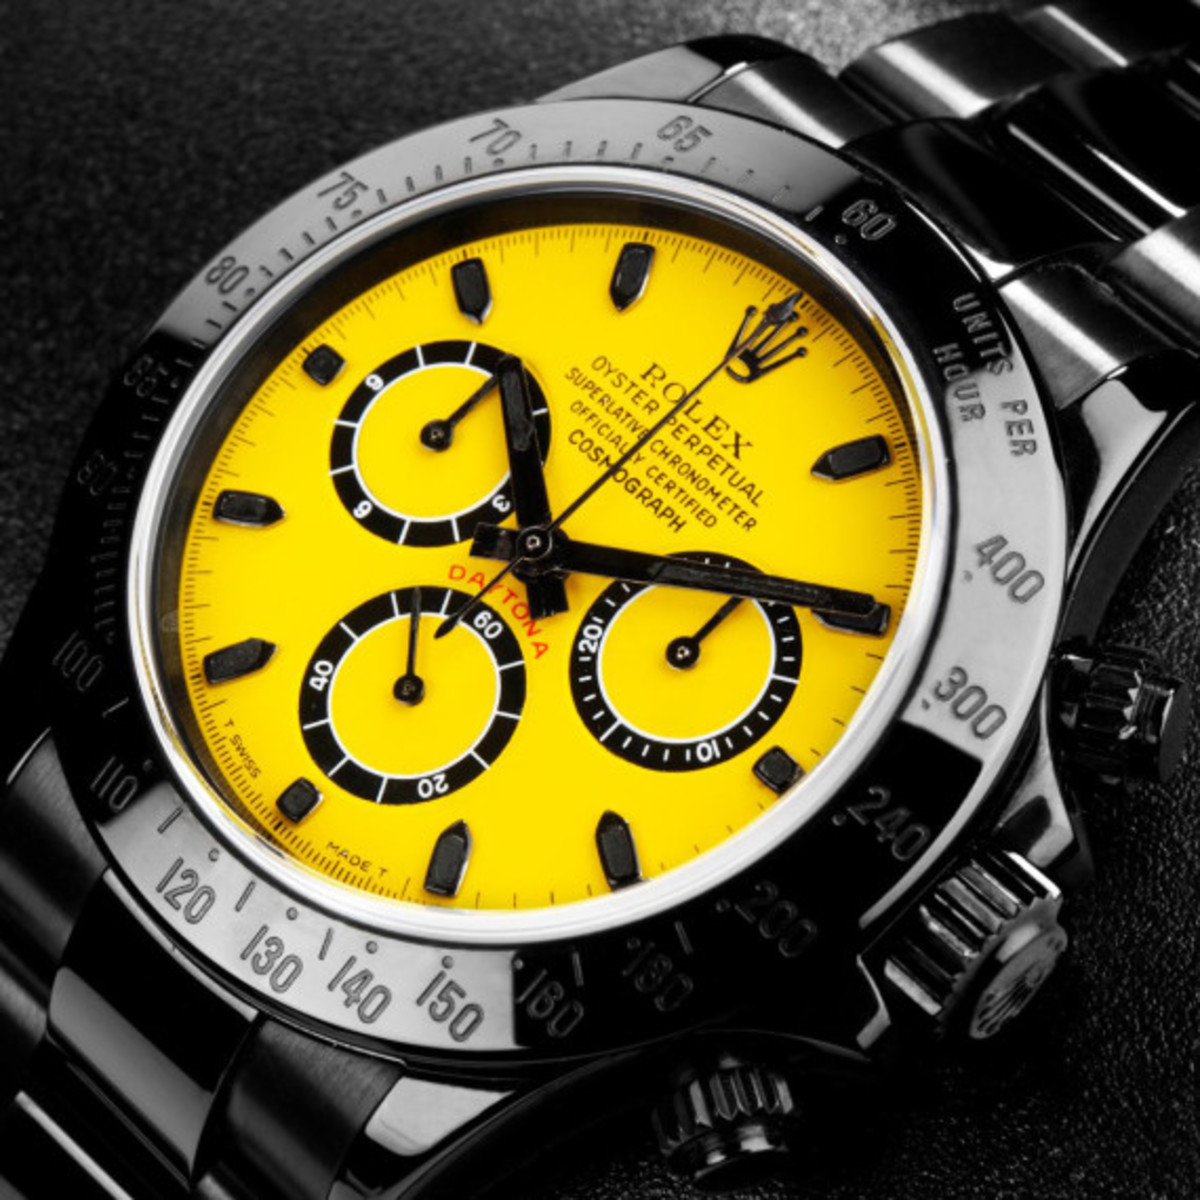 BAMFORD WATCH DEPARTMENT – Rolex Cosmograph Daytona Chronograph Collection - 3